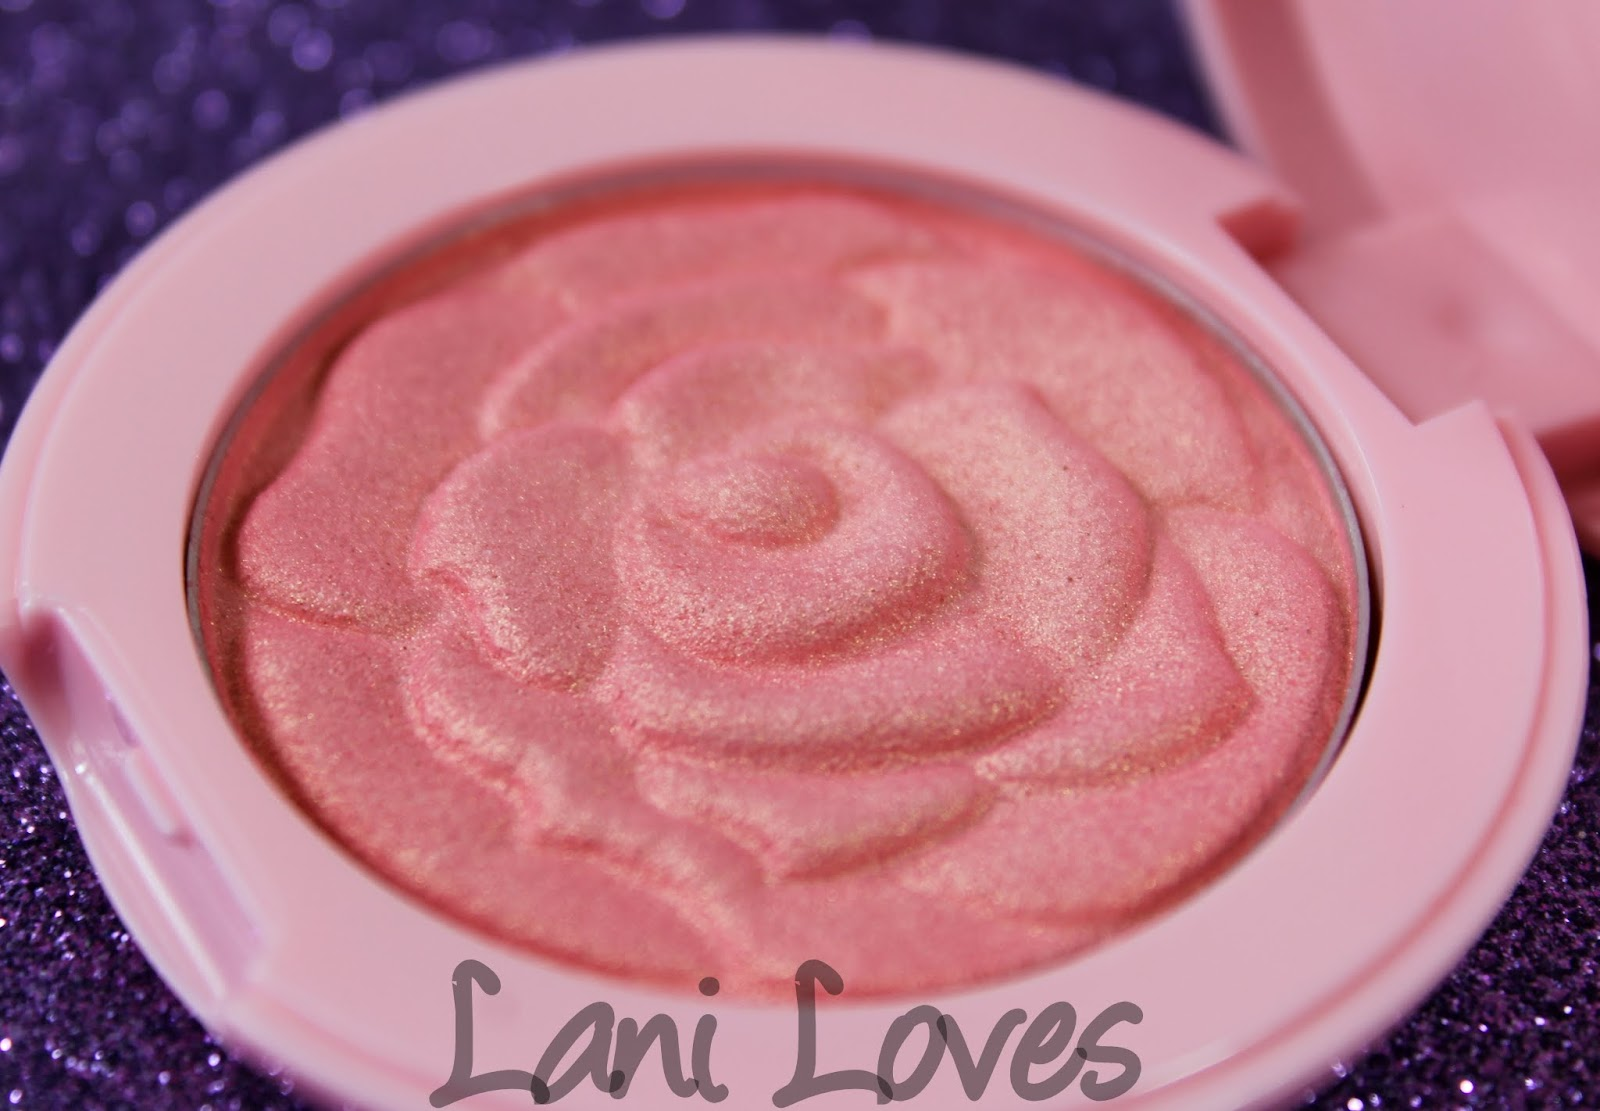 Etude House Princess Happy Ending: Rose Cheek Blusher - Coral Rose Swatches & Review